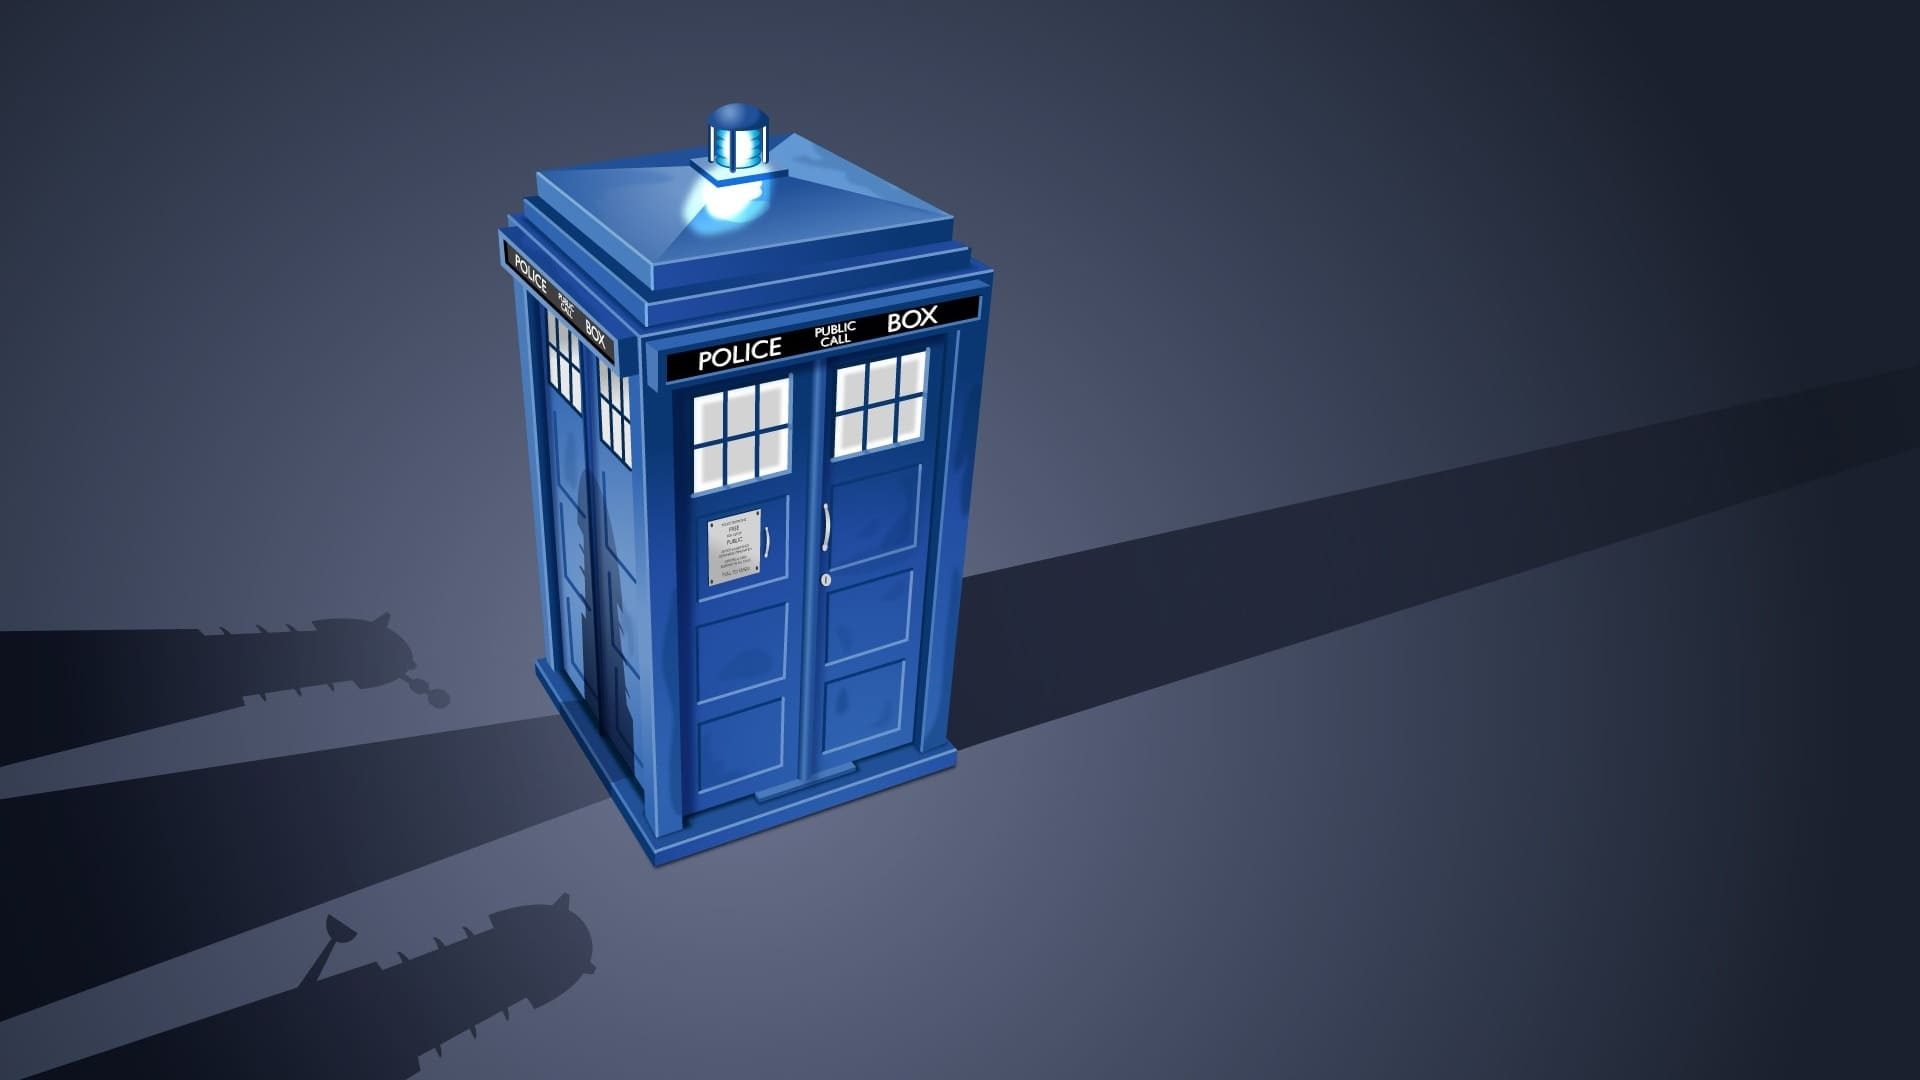 Doctor who wallpaper phone